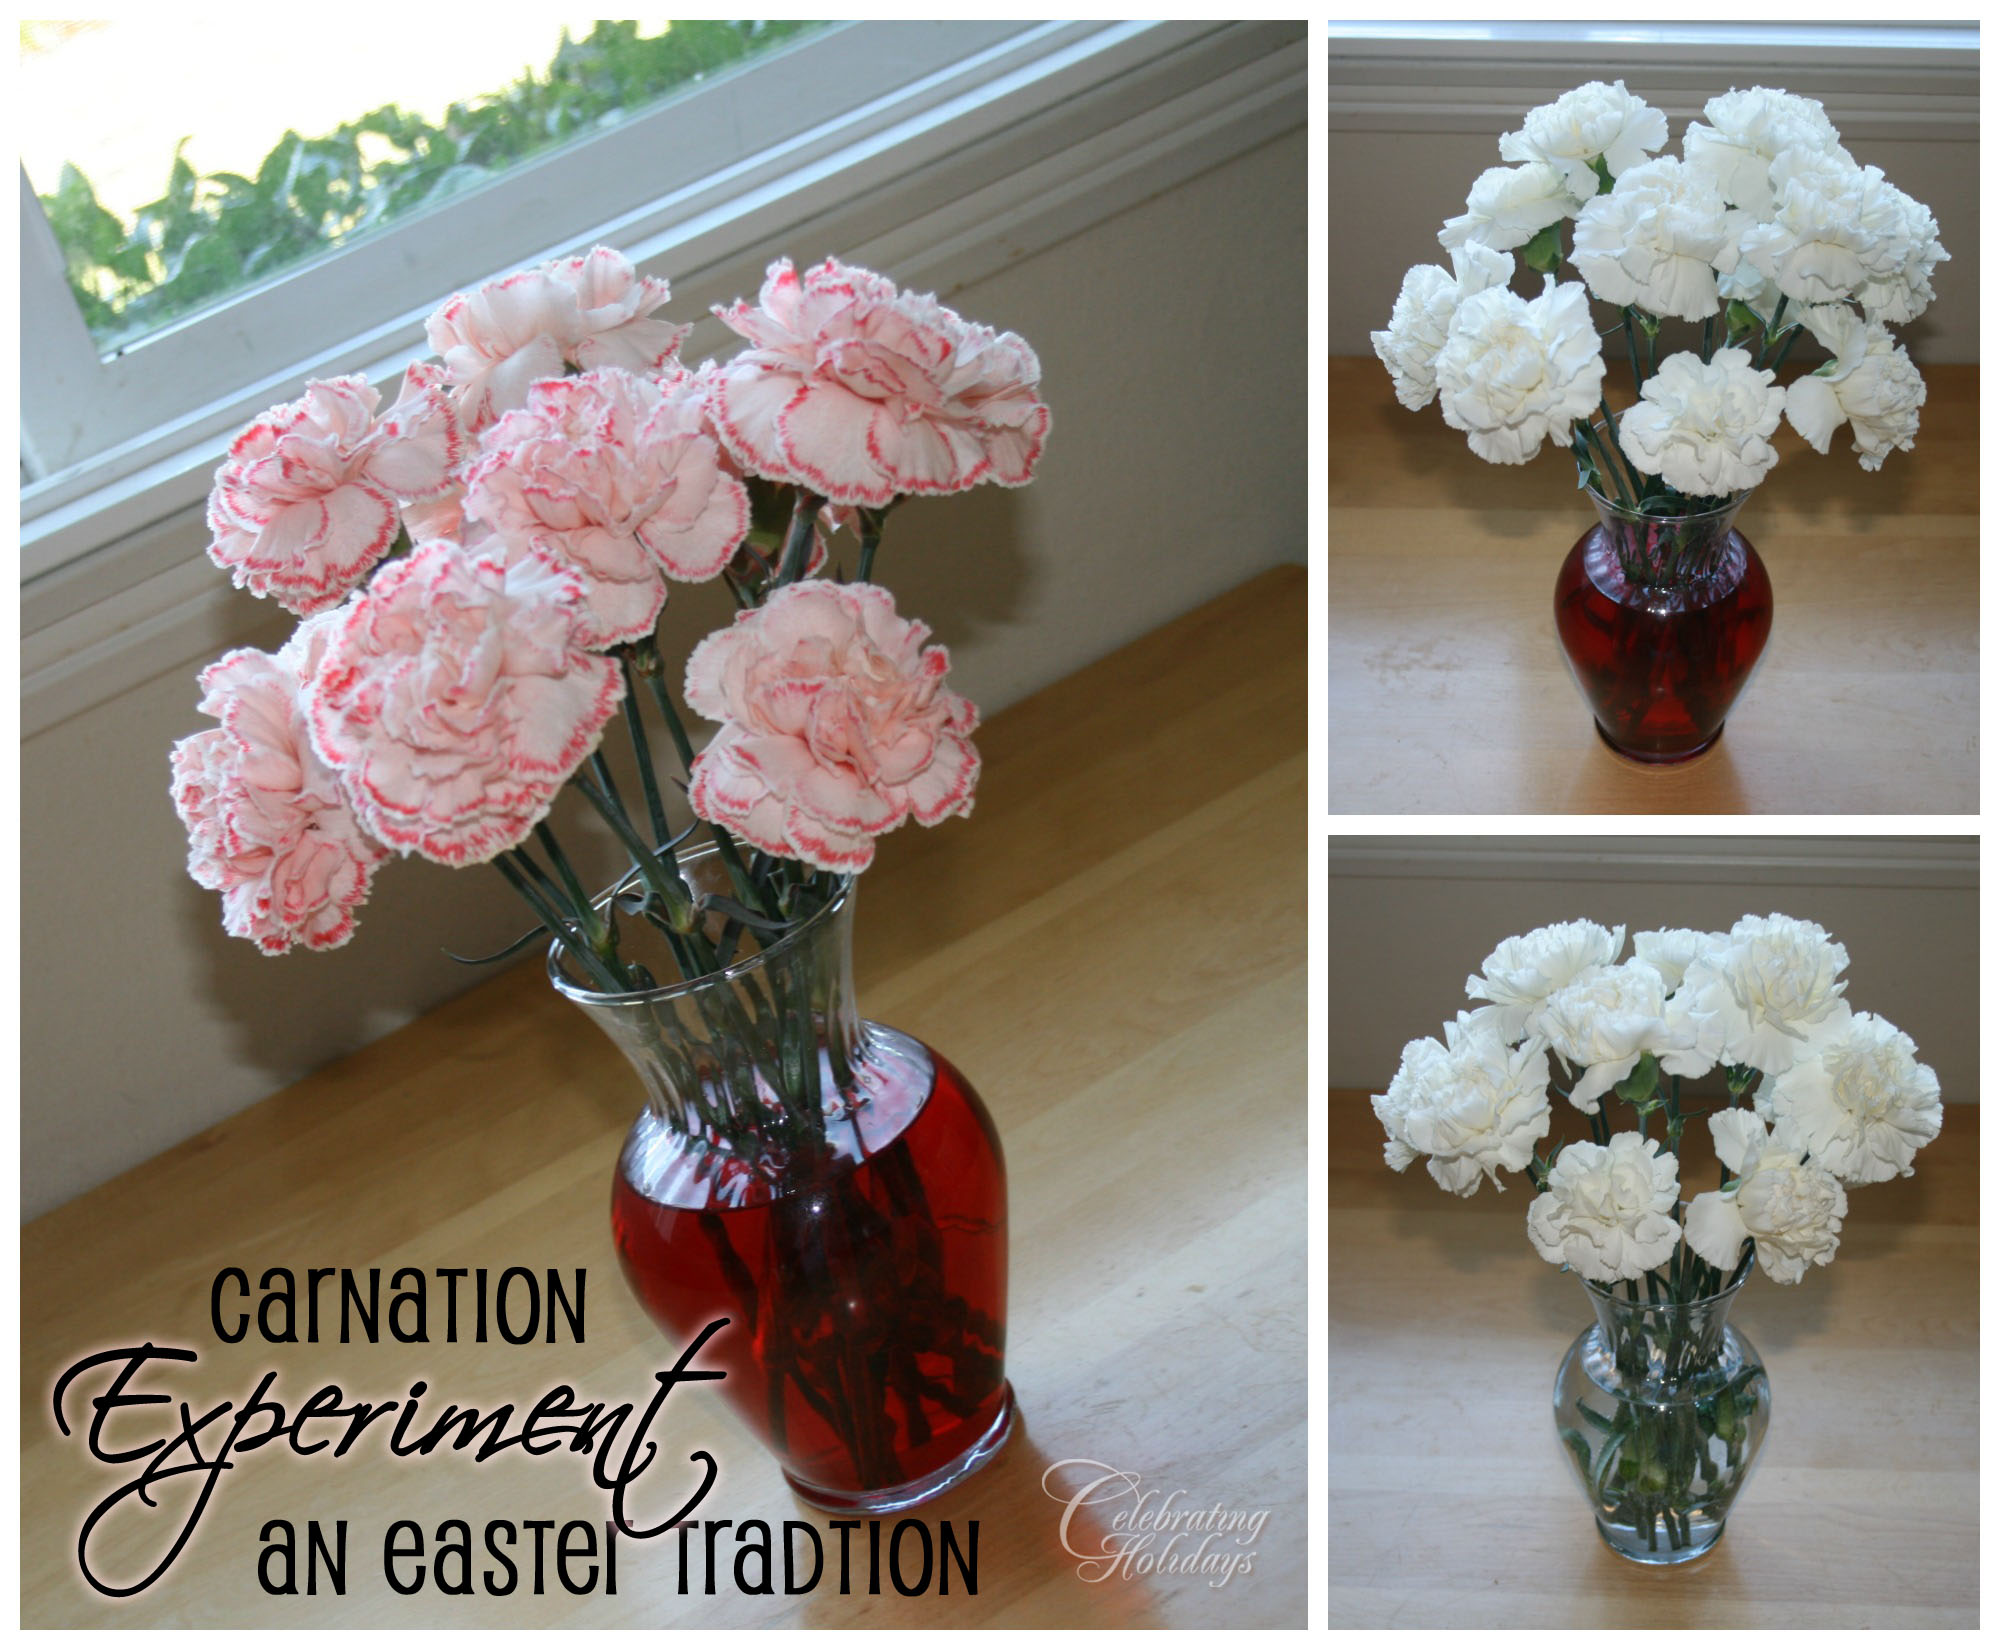 Carnation Experiment For Easter